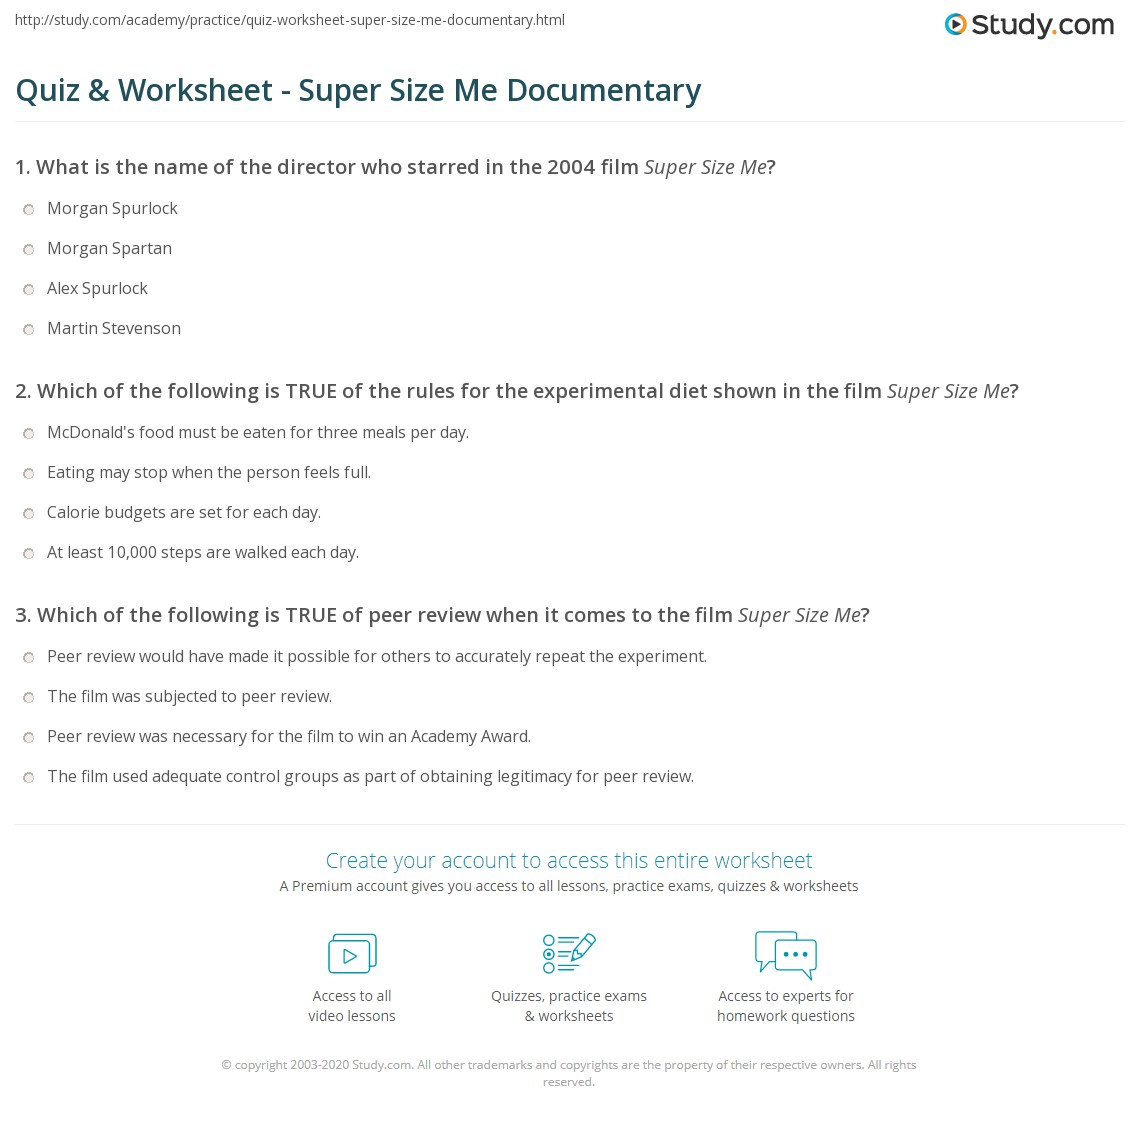 Printables Supersize Me Worksheet Answers super size me film worksheet answers intrepidpath quiz doentary study